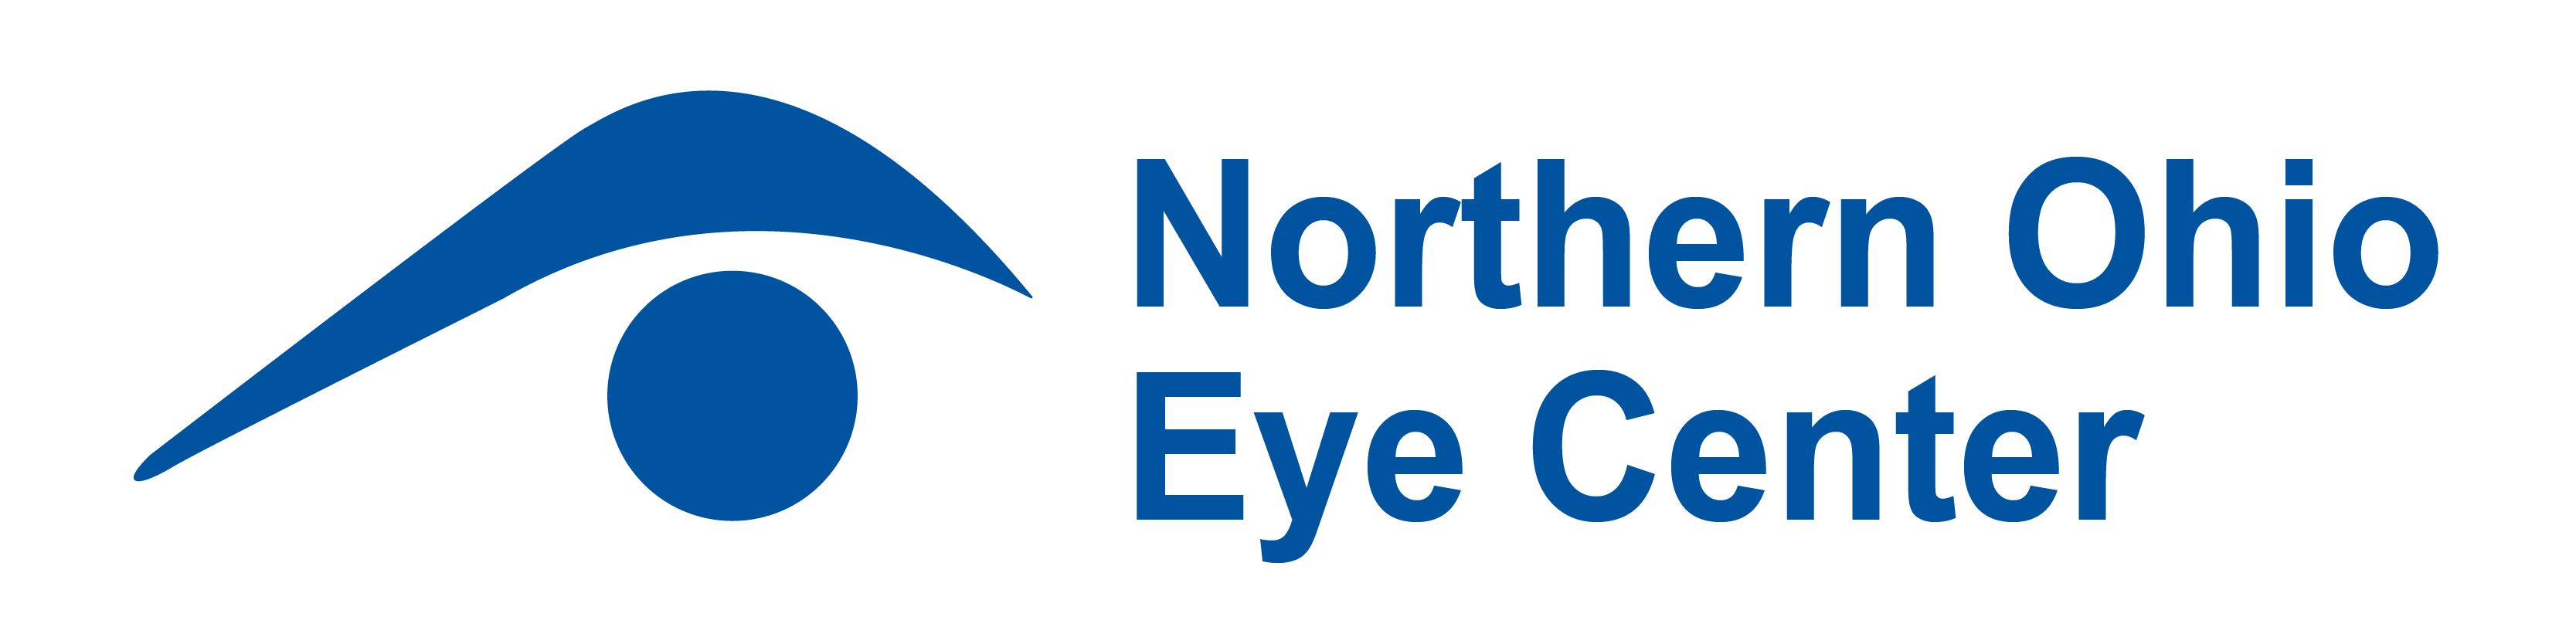 Northern Ohio Eye Center